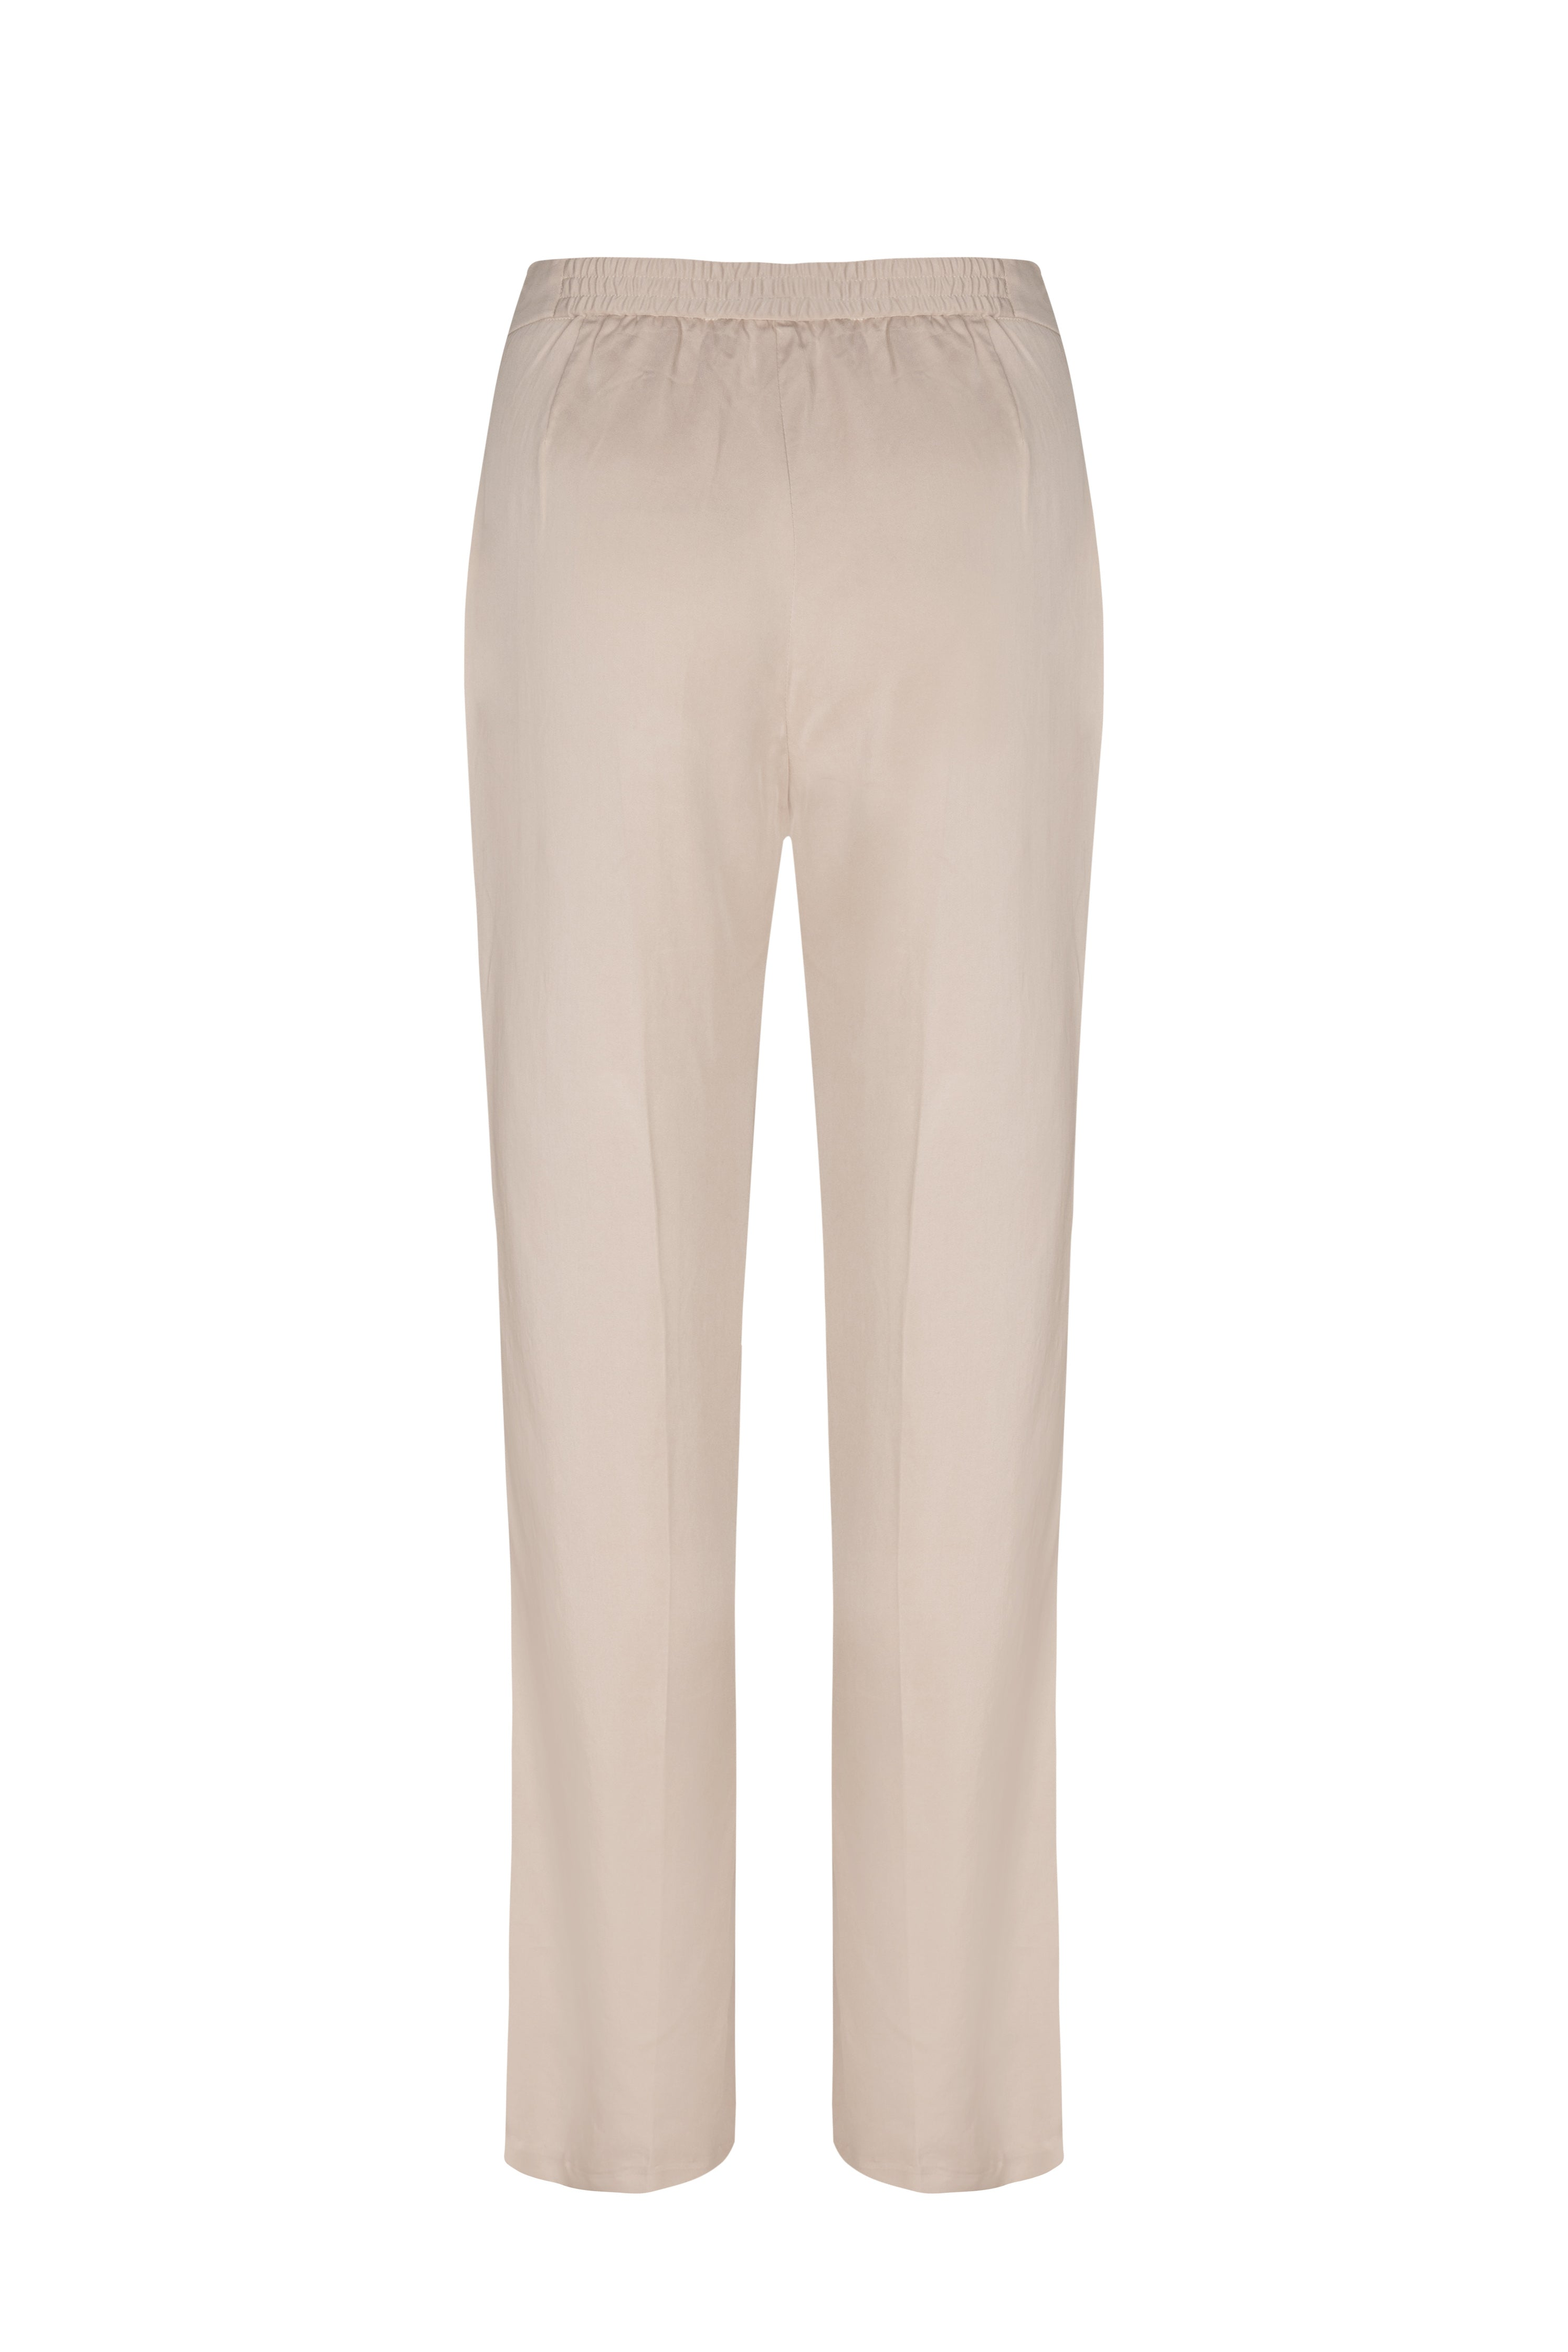 Jemima Trousers in Sand